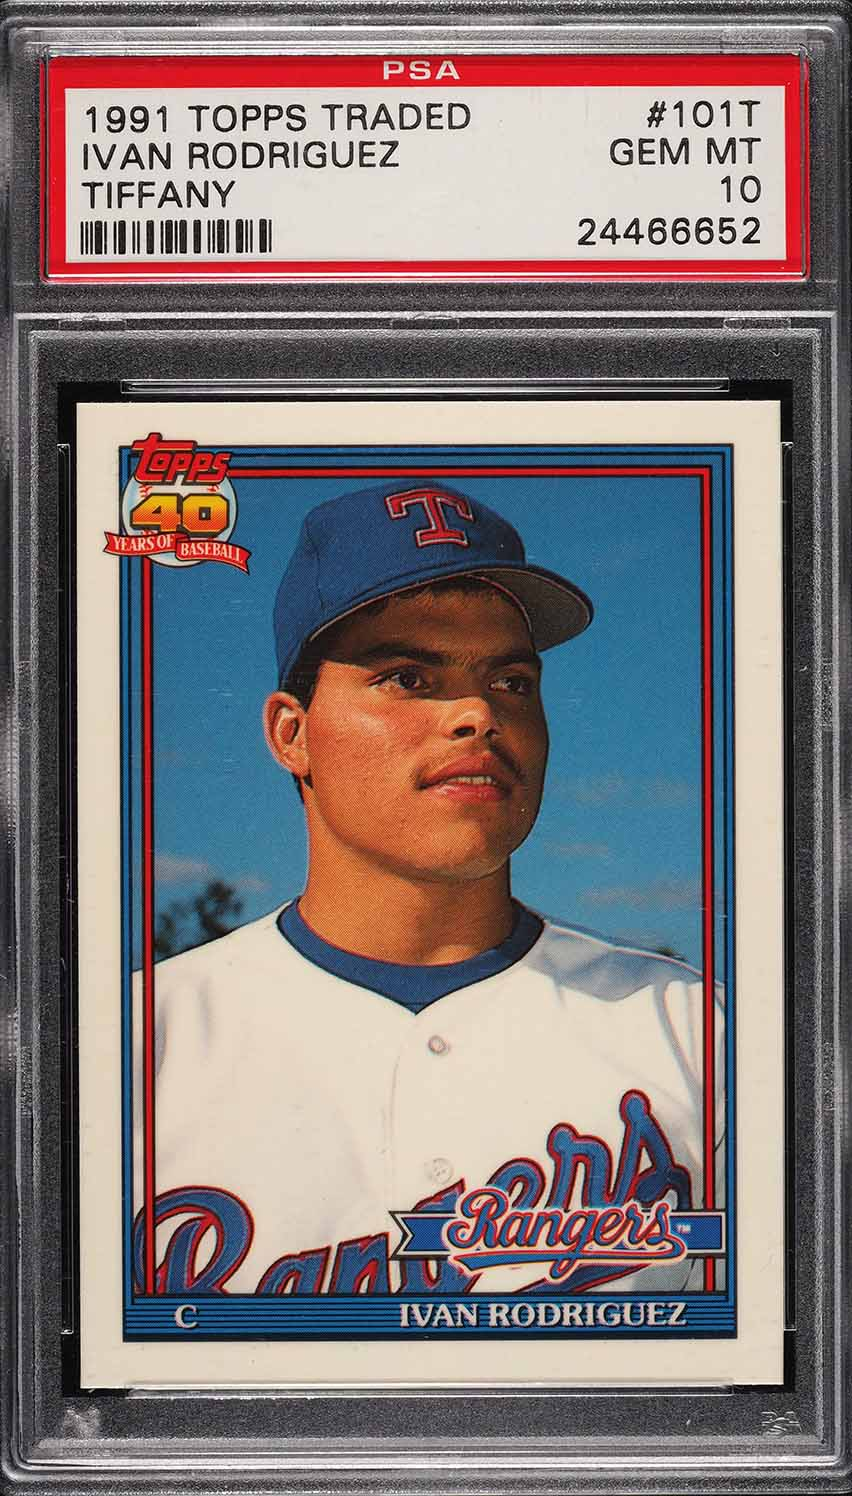 Image of: 1991 Topps Traded Tiffany Ivan Rodriguez ROOKIE RC #101T PSA 10 GEM MINT (PWCC)